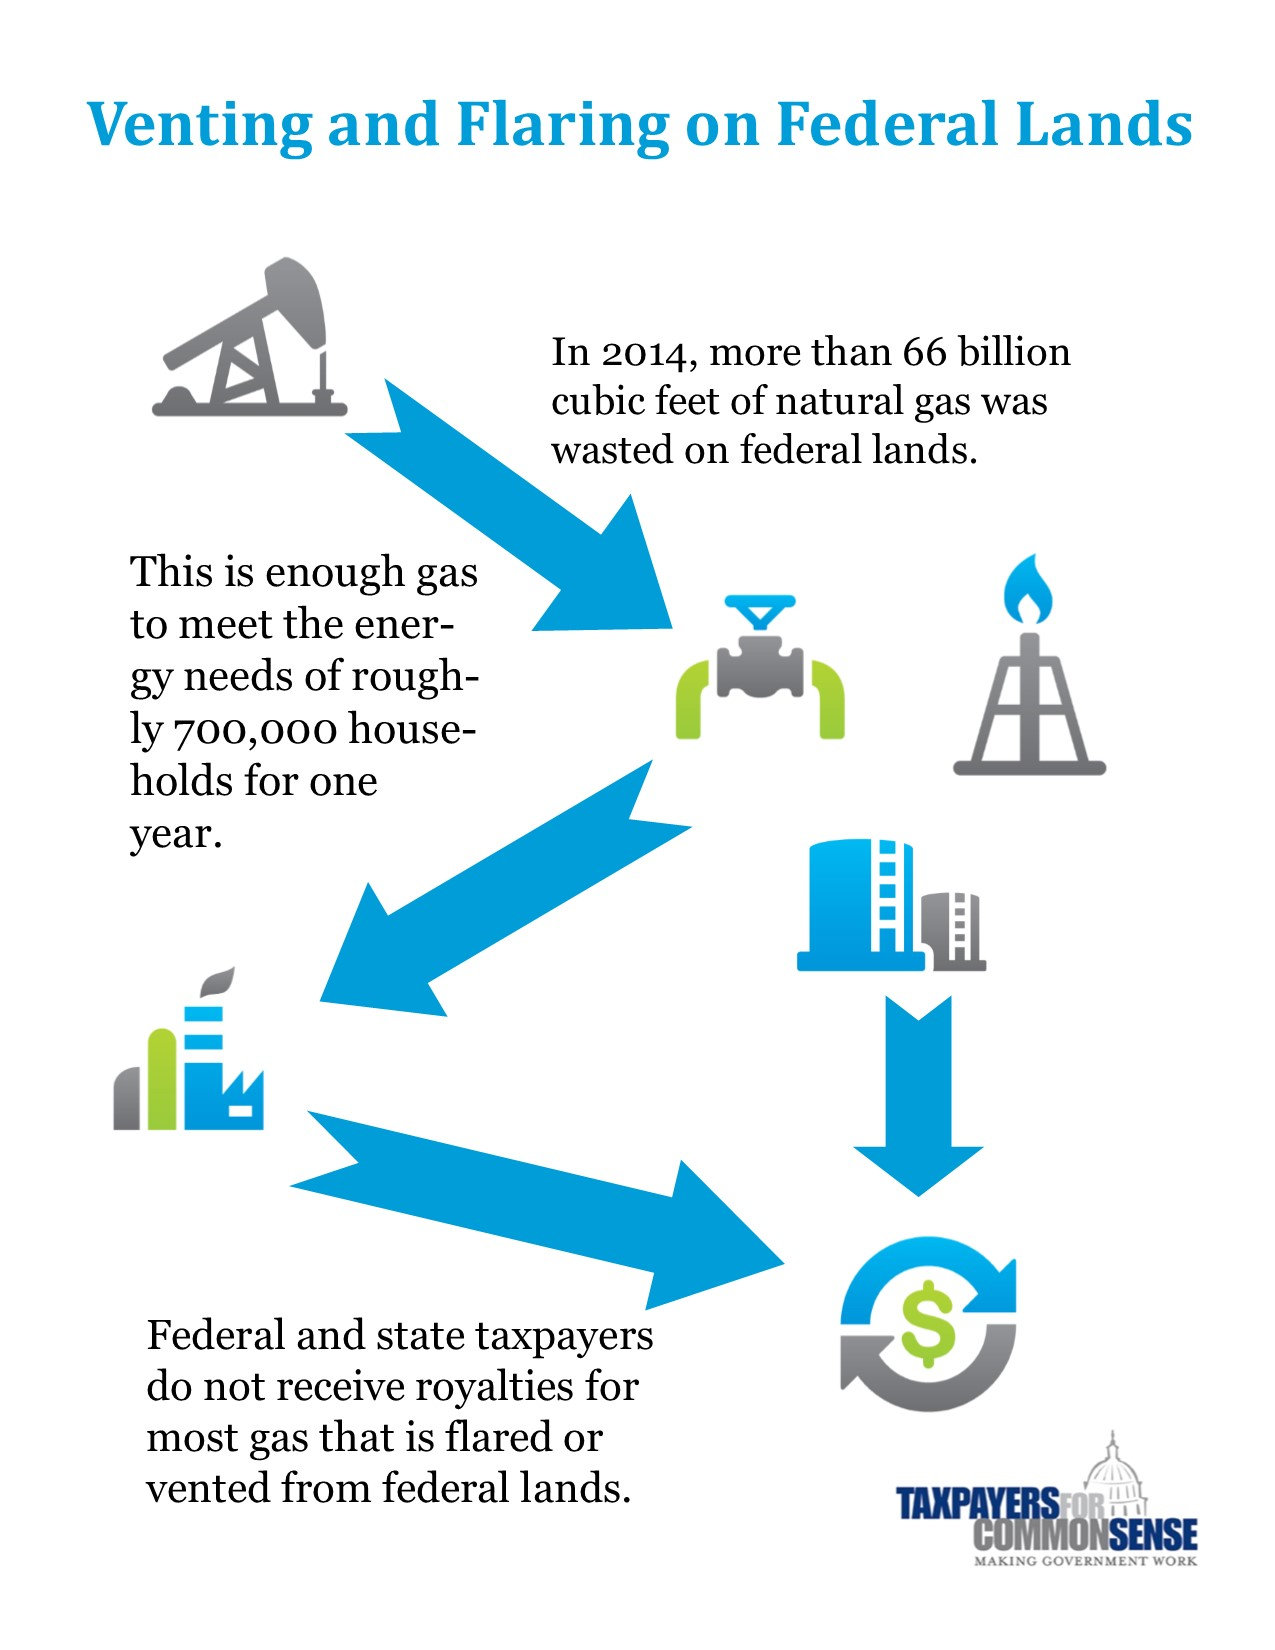 New rule for venting and flaring could reduce wasted gas increase please visit the tcs resource page venting and flaring of natural gas on federal lands or download the materials below for more information geenschuldenfo Choice Image